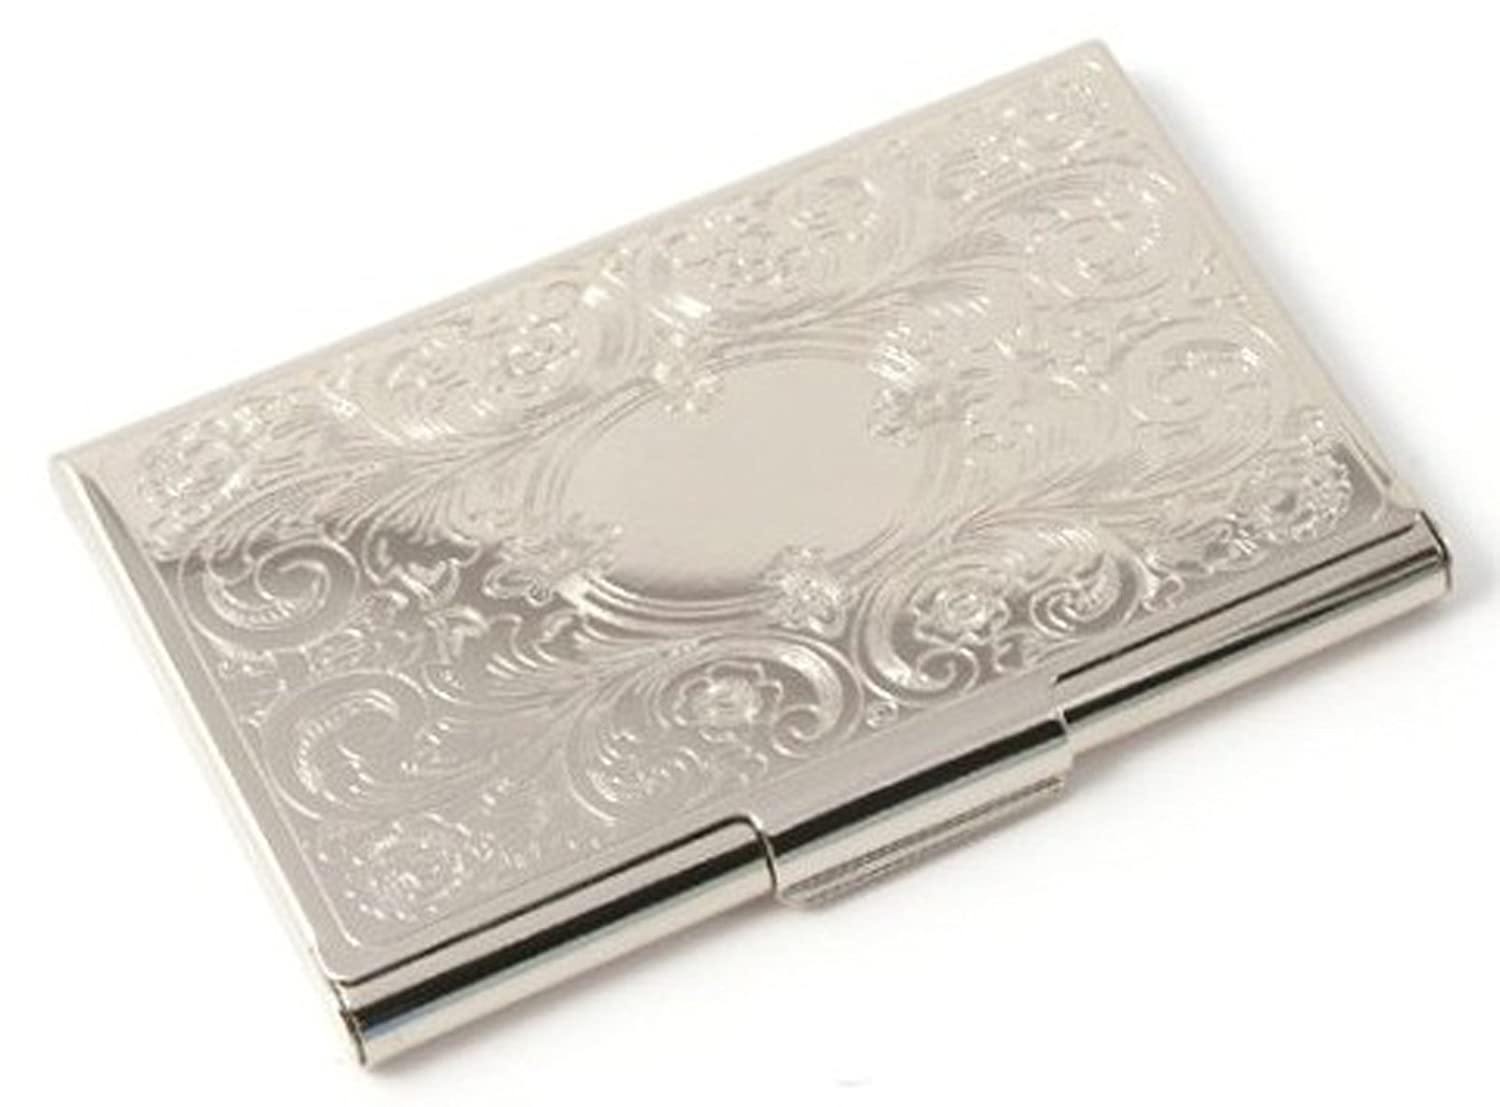 Deluxe stainless steel metal business credit card holder case silver deluxe stainless steel metal business credit card holder case silver monogram amazon office products reheart Image collections